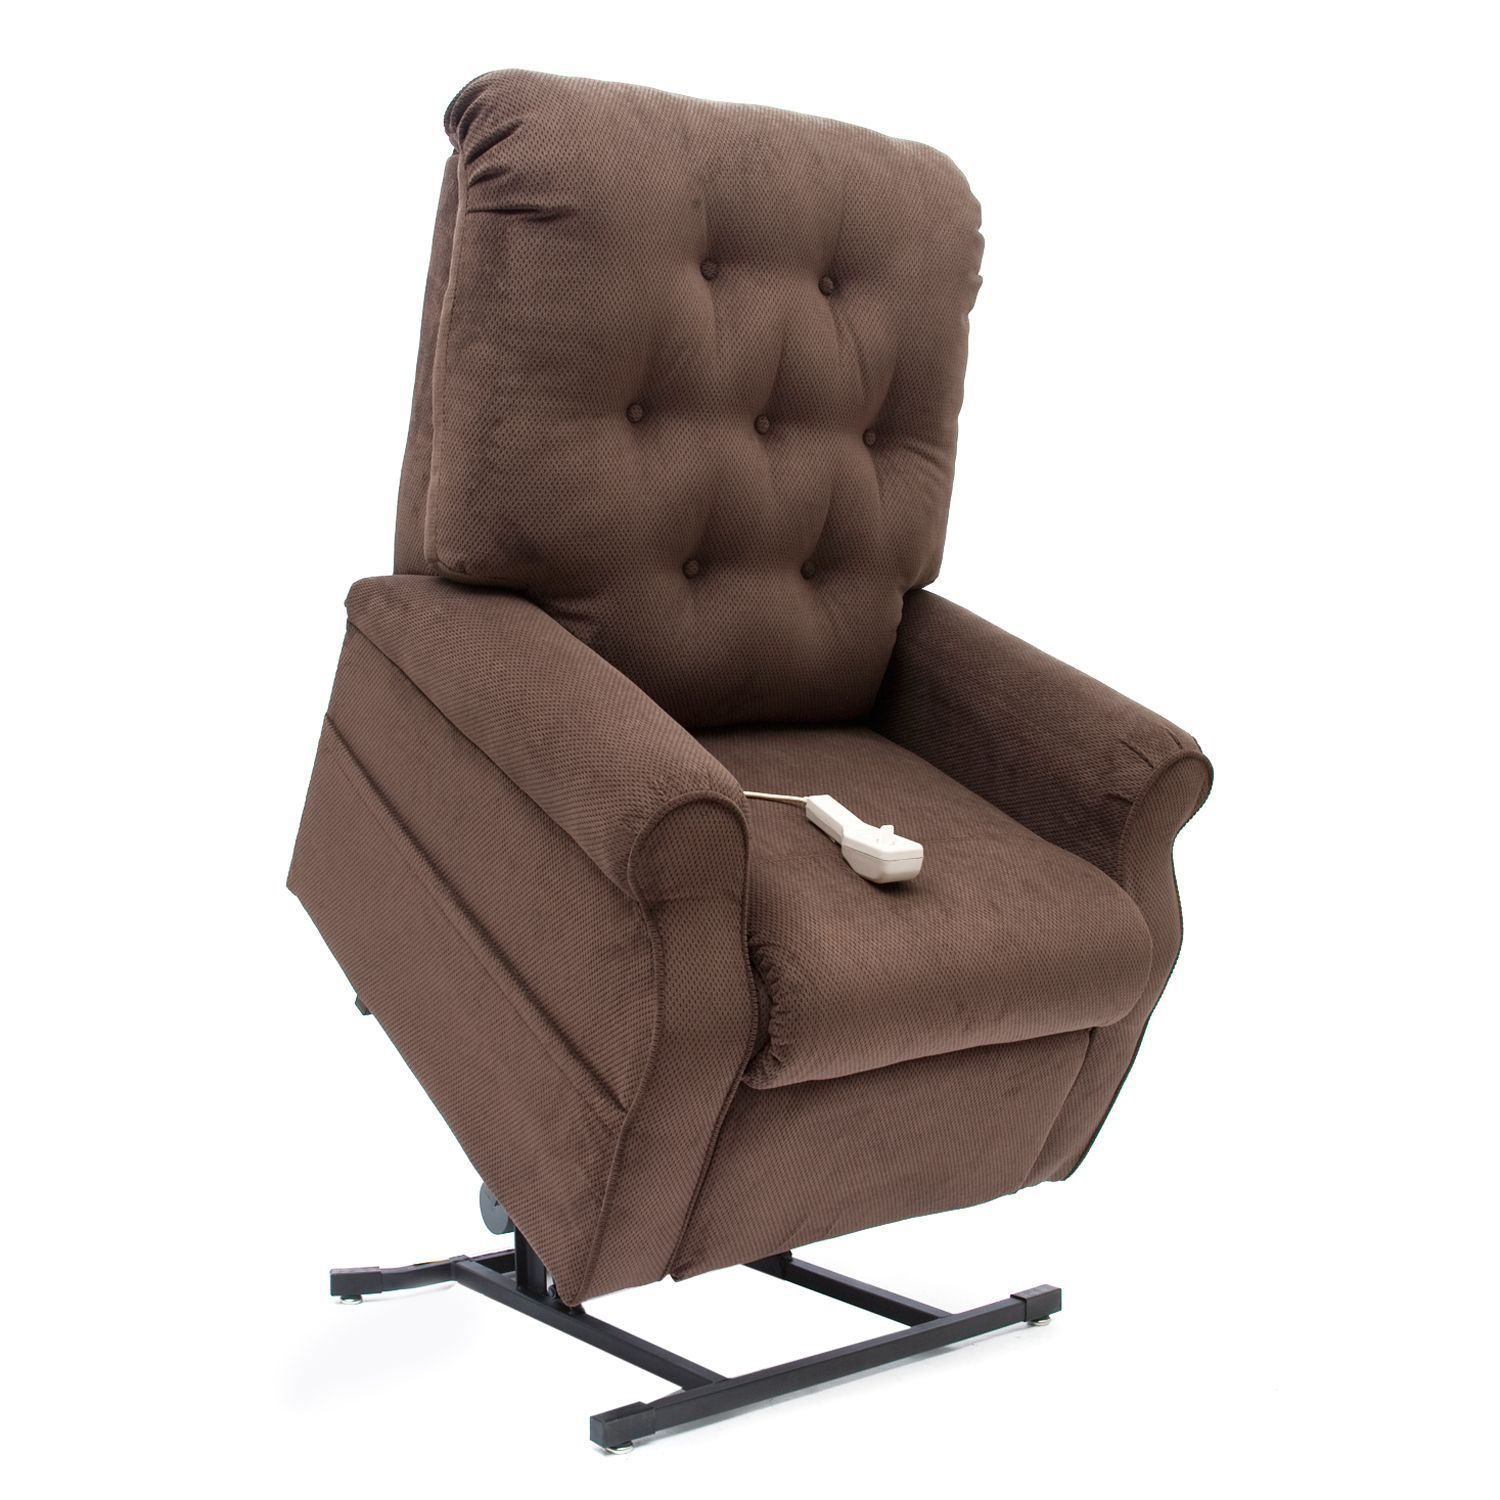 with chair chairs payment a does will pay parts power decoration for medicare lift